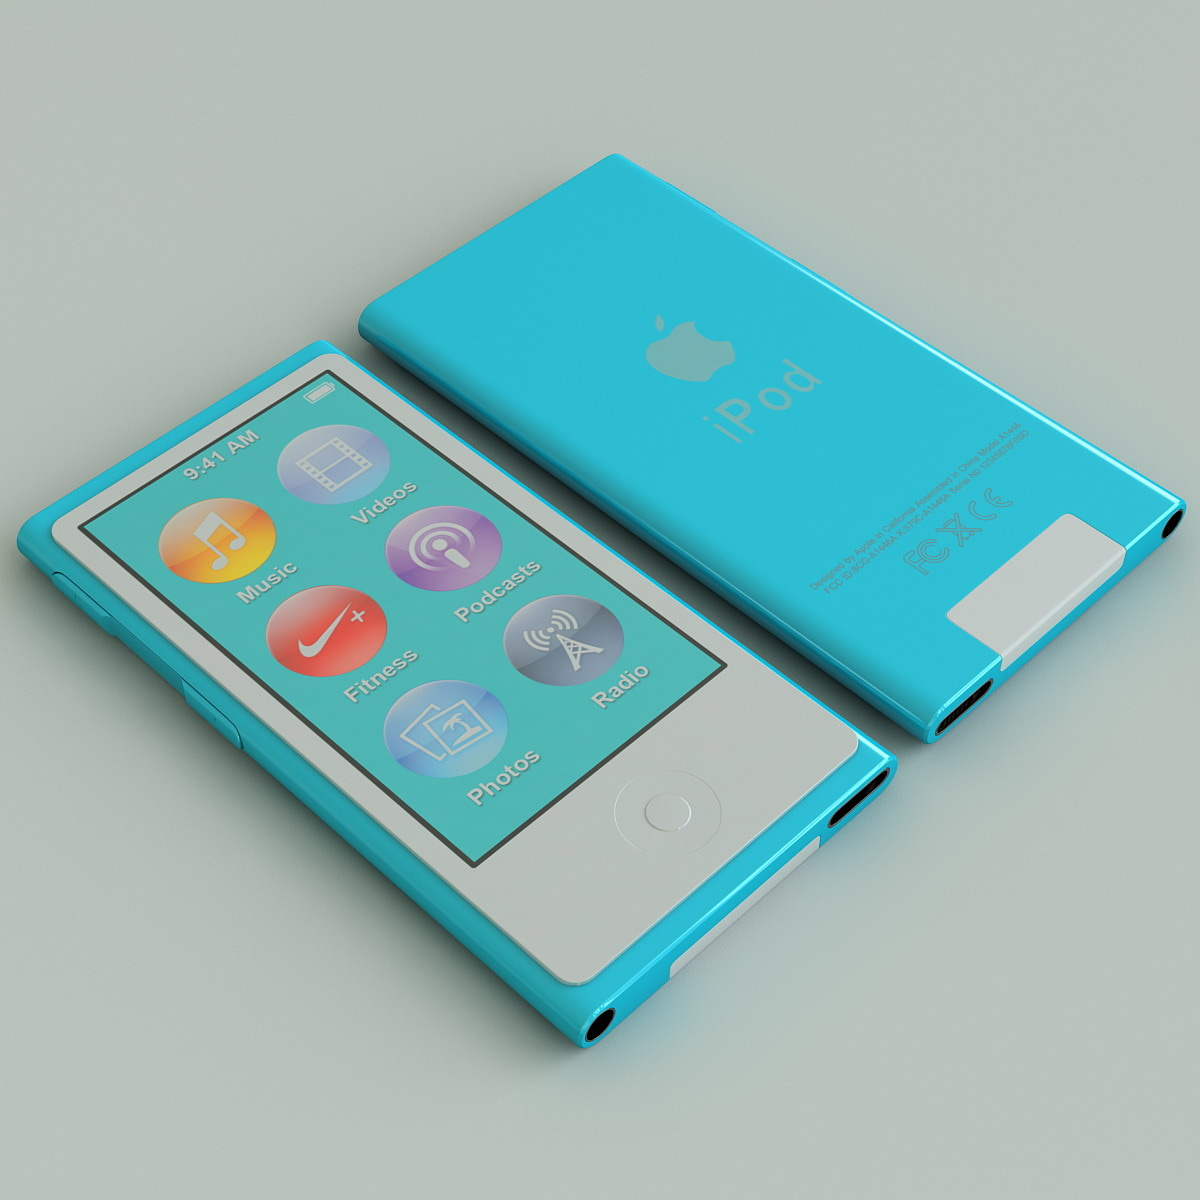 Ipod_Nano_Generation_7th_Blue_004.jpg